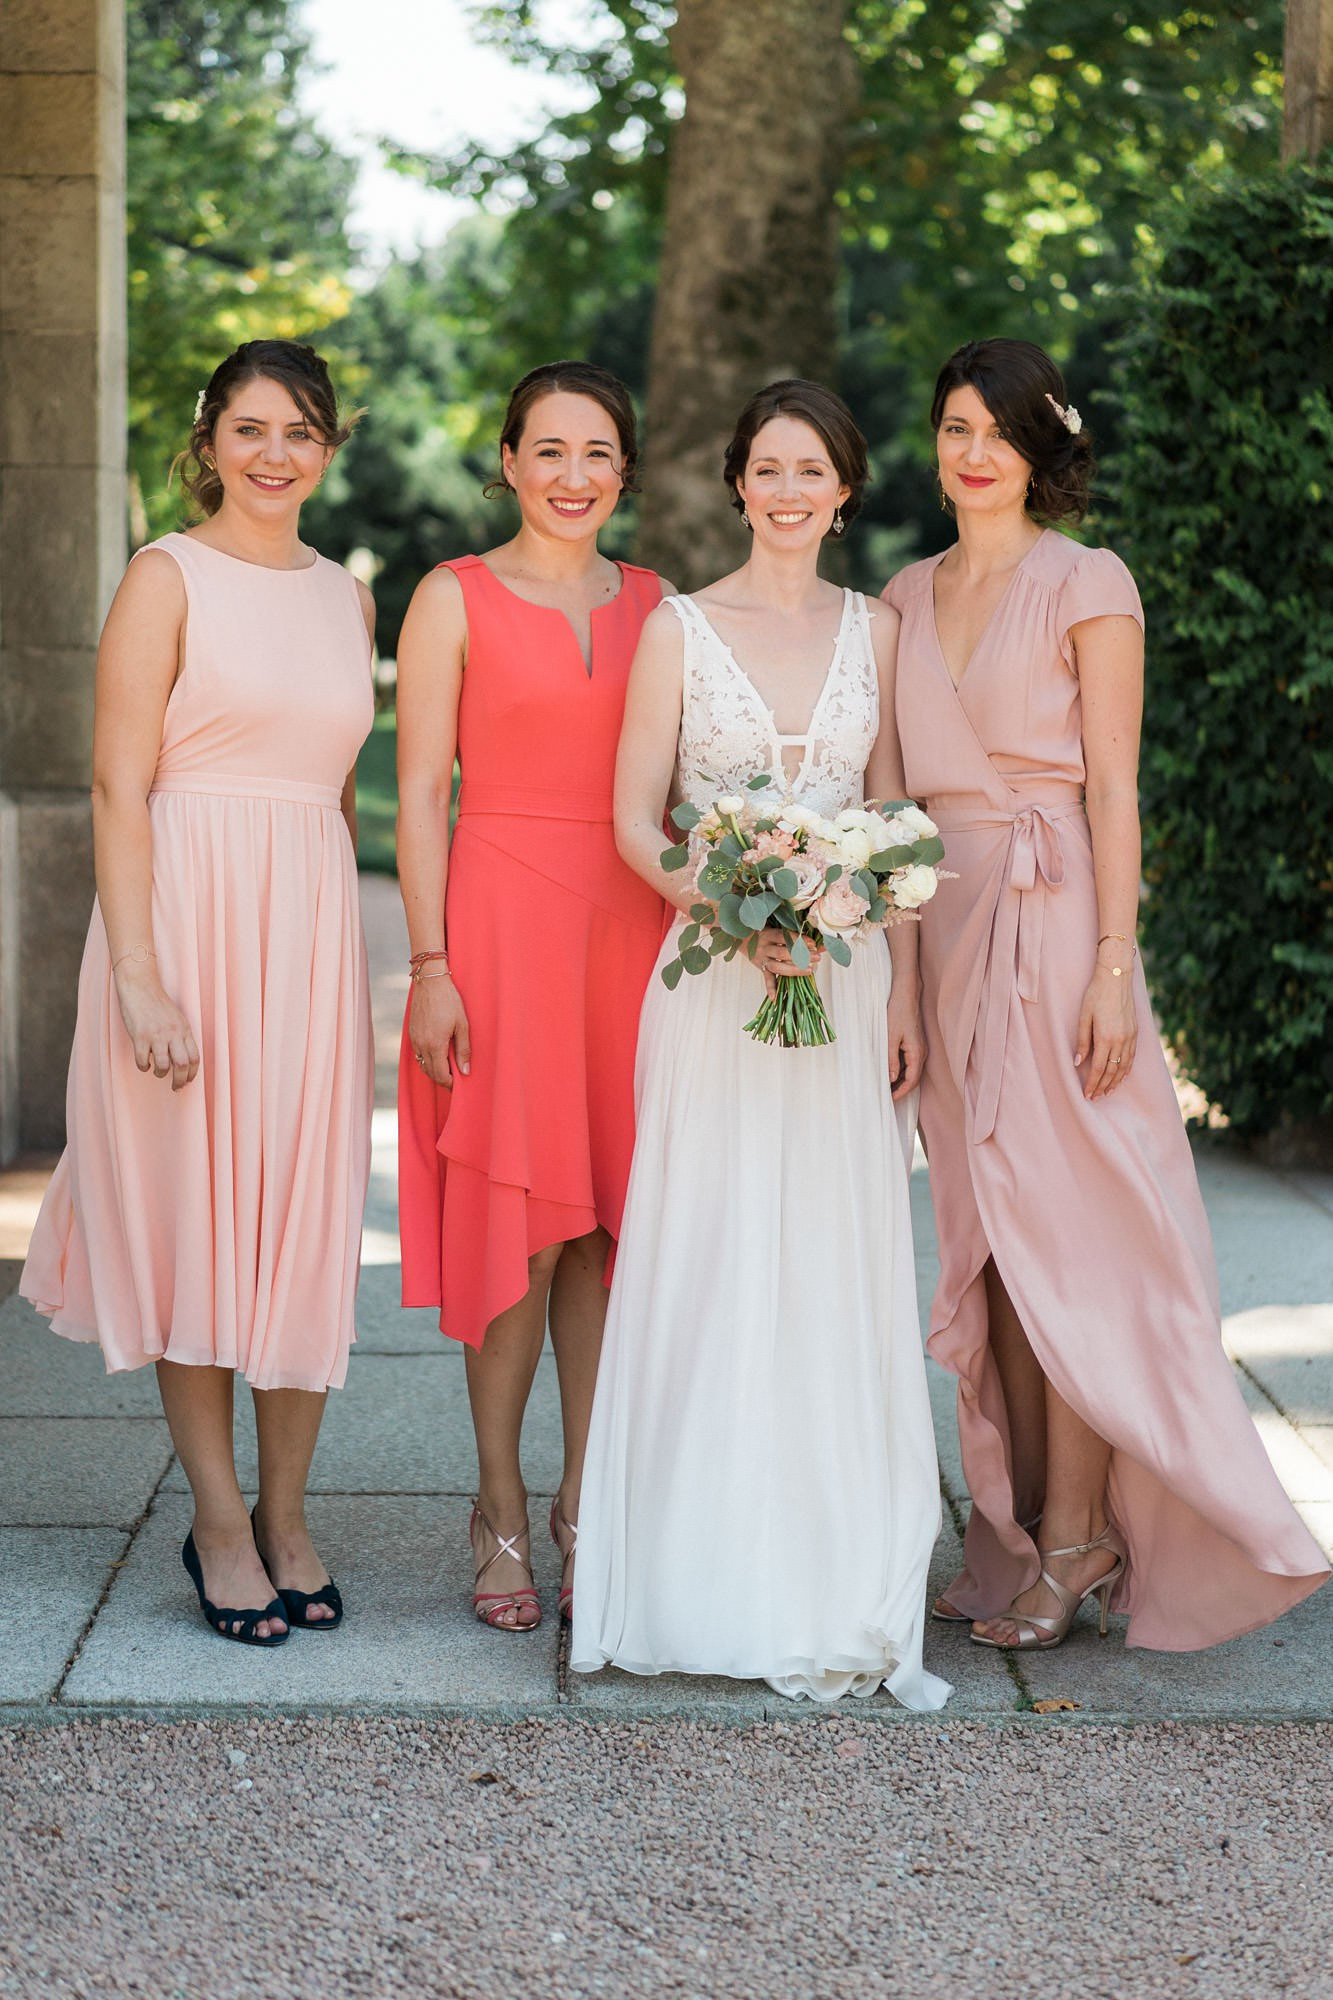 Margaux Tardits dress elegant Italian summer wedding  - A Romantic Margaux Tardits Dress + First Look for an Elegant Summer Destination Wedding in Italy